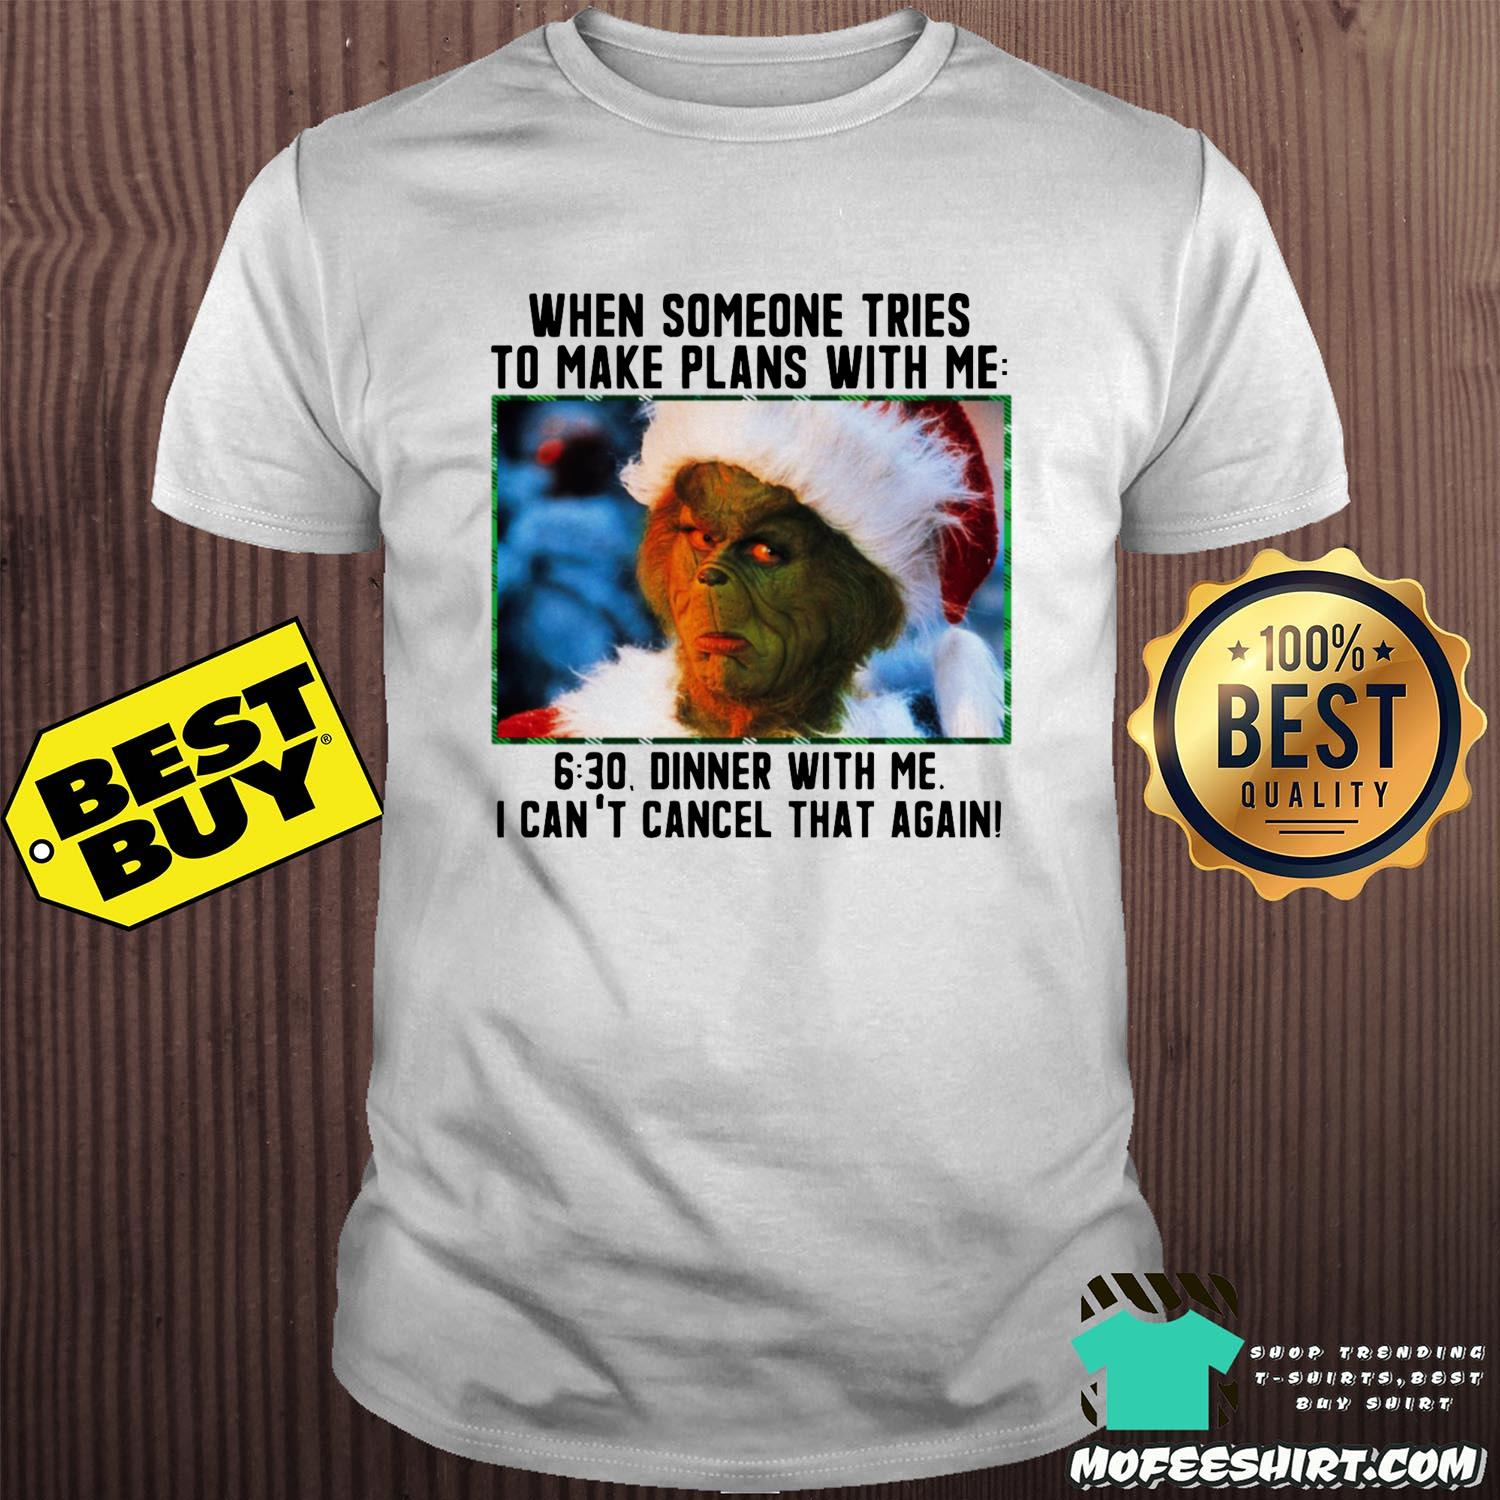 grinch merry christmas when someone tries to make plans with me 630 dinner with me i cant cancel me i cant cancel that again shirt - Grinch Merry Christmas When Someone Tries To Make Plans With Me 6:30 Dinner With Me I Can't Cancel That Again Shirt